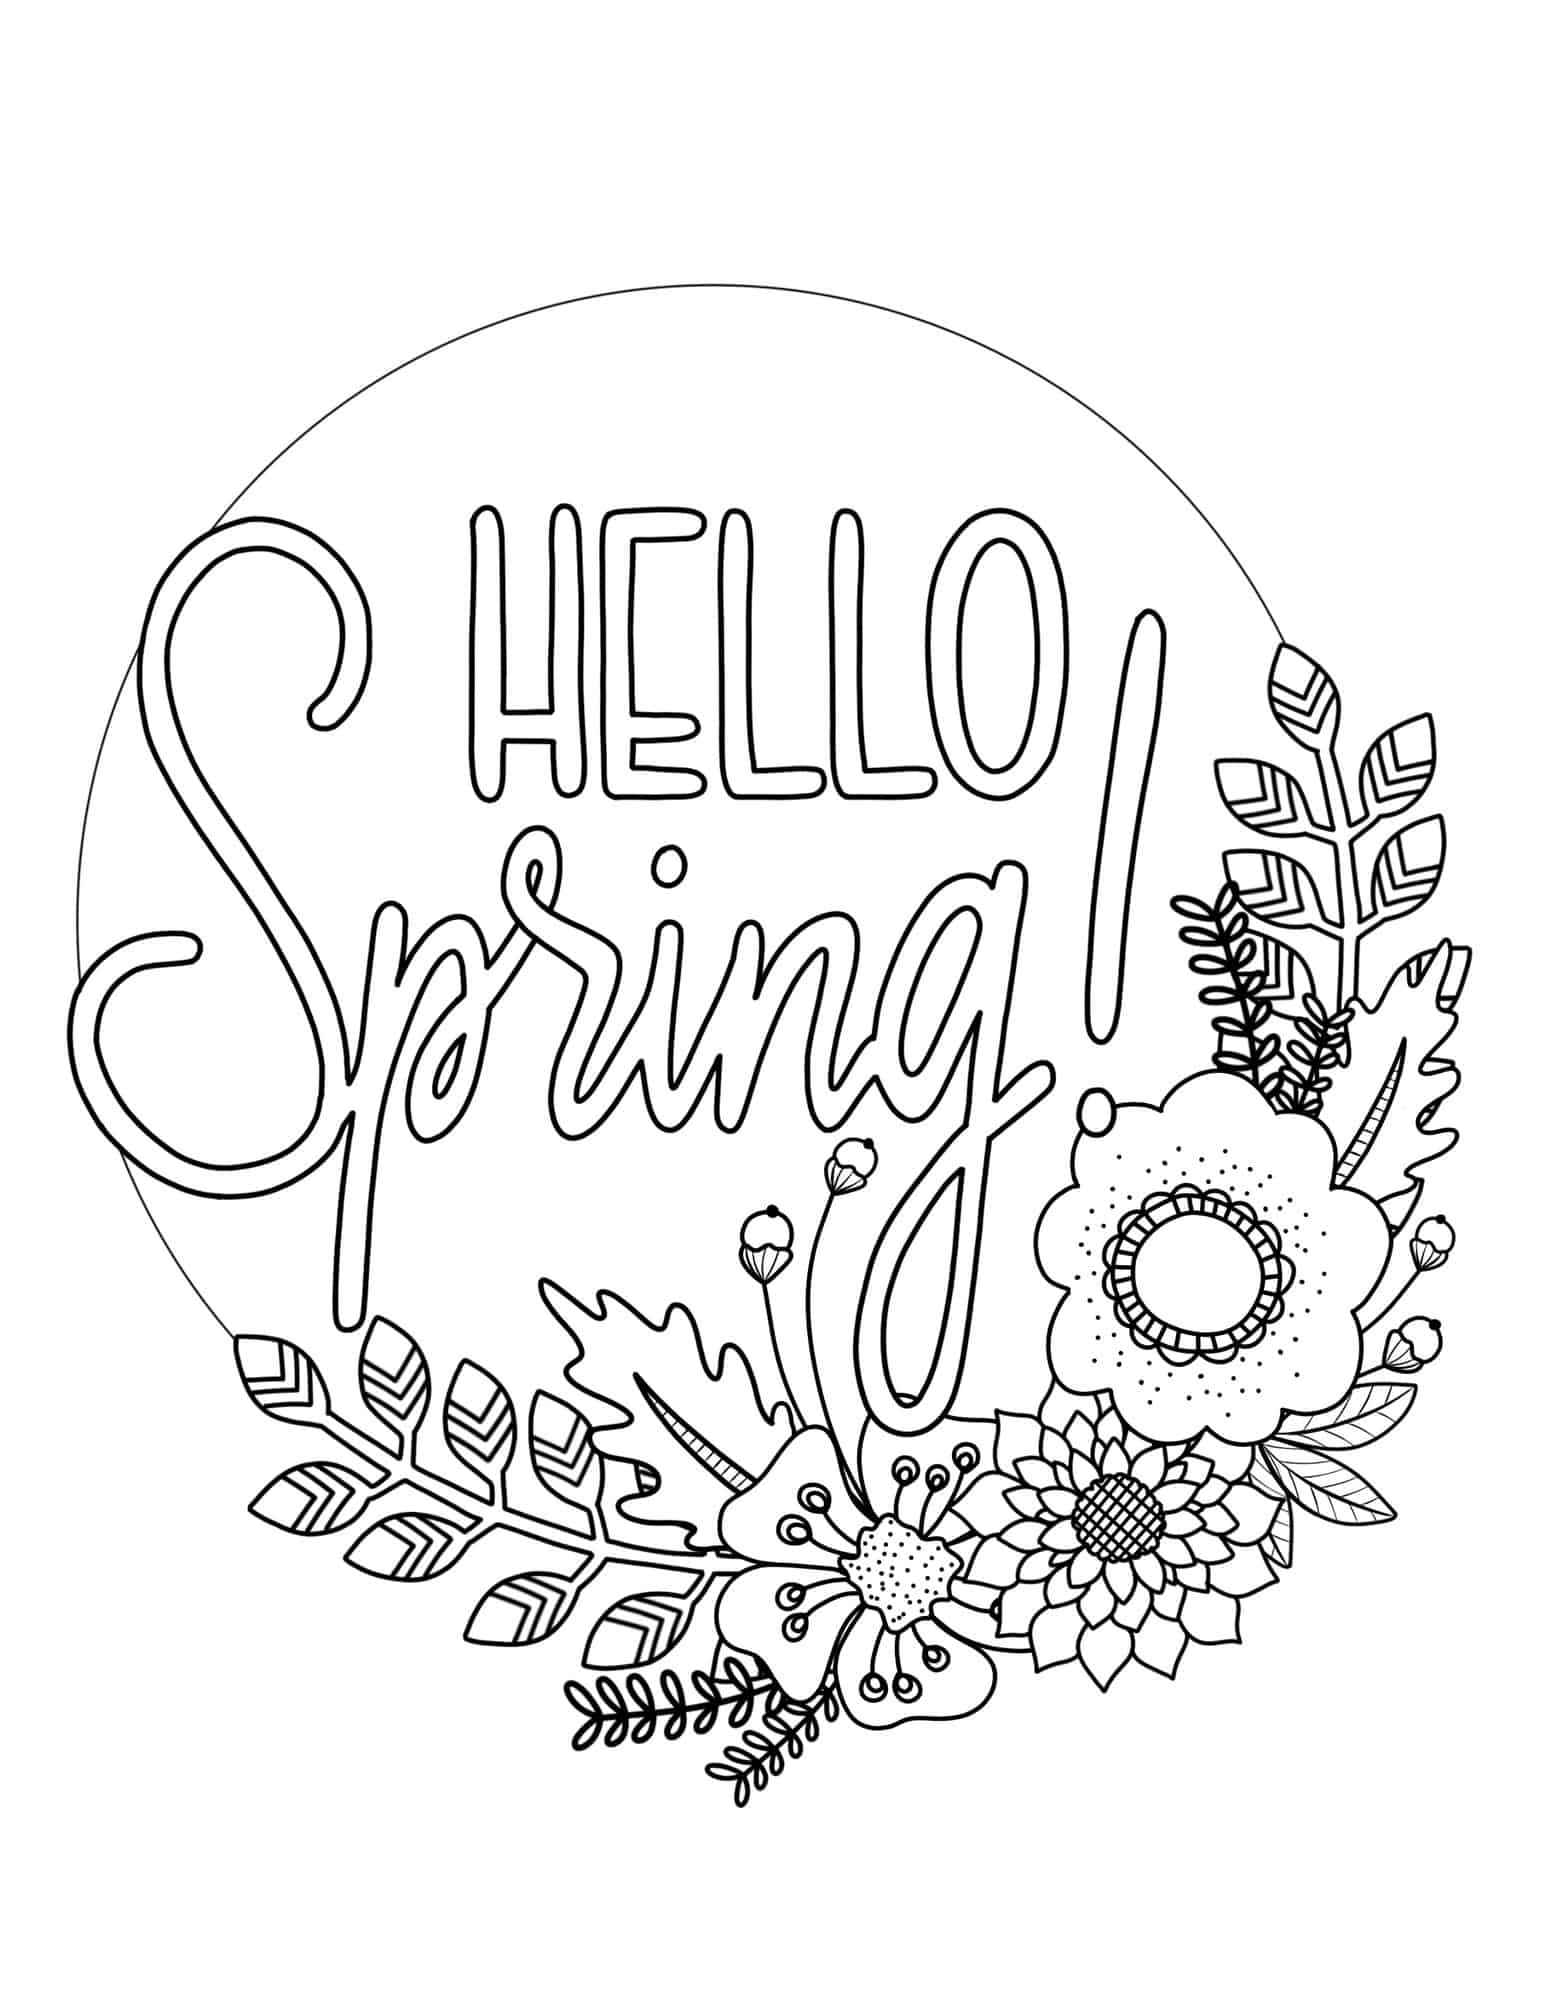 Fan image intended for printable spring color pages